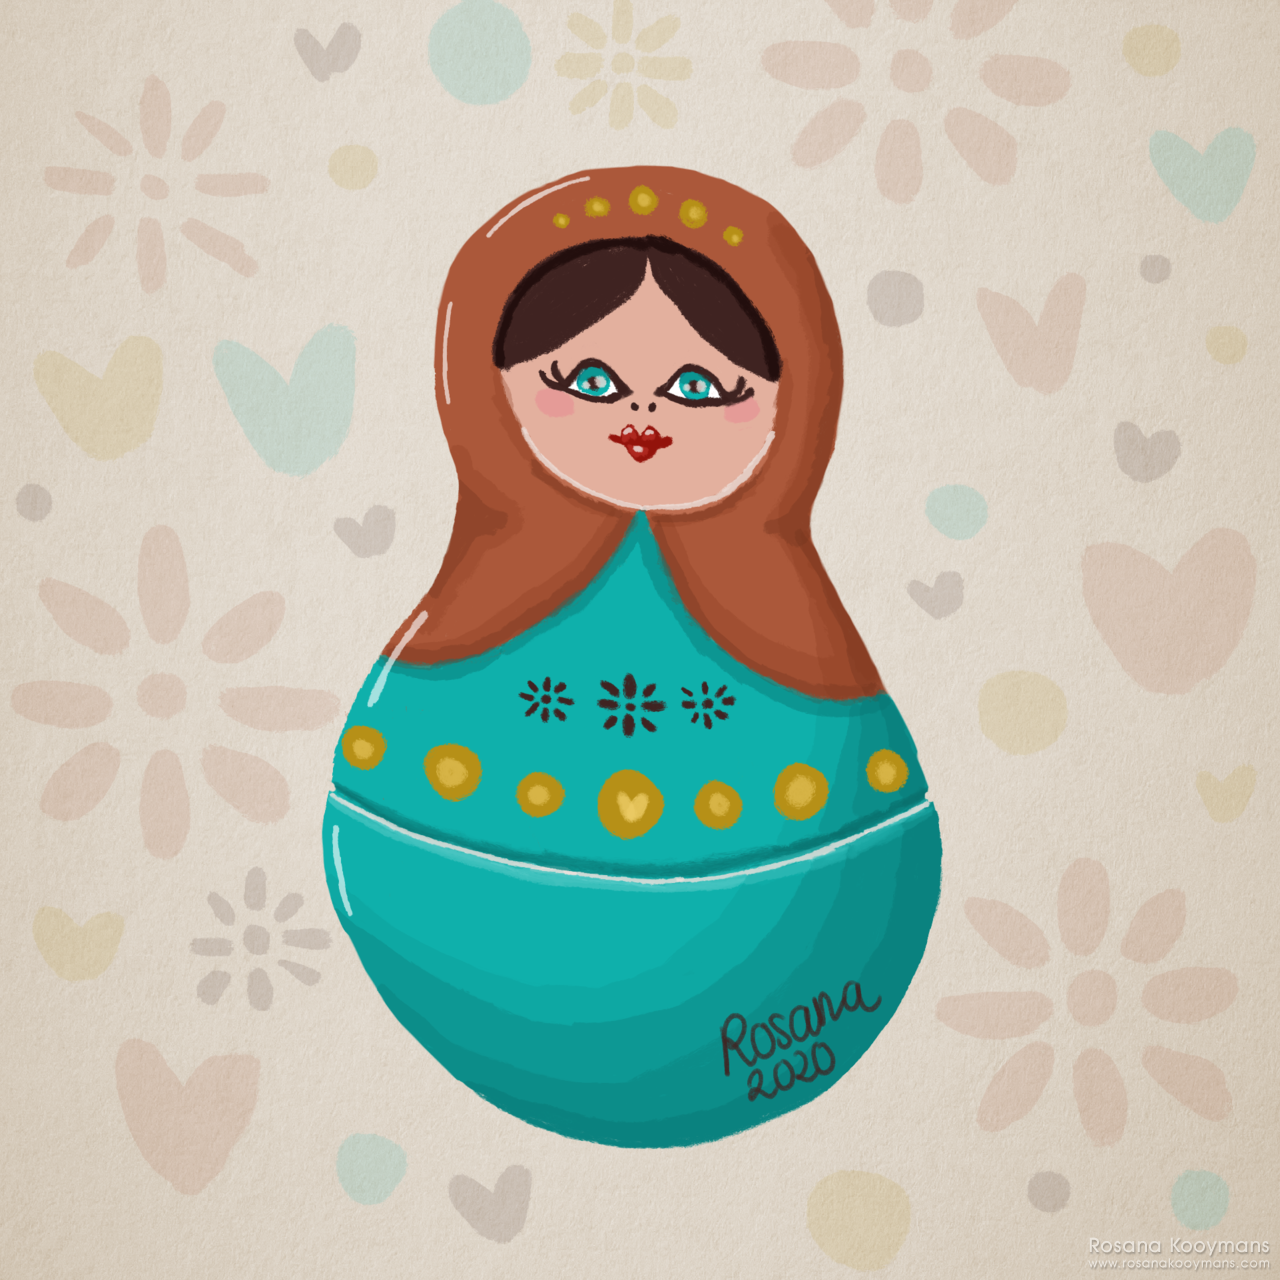 Matryoshka Doll Illustration by Rosana Kooymans